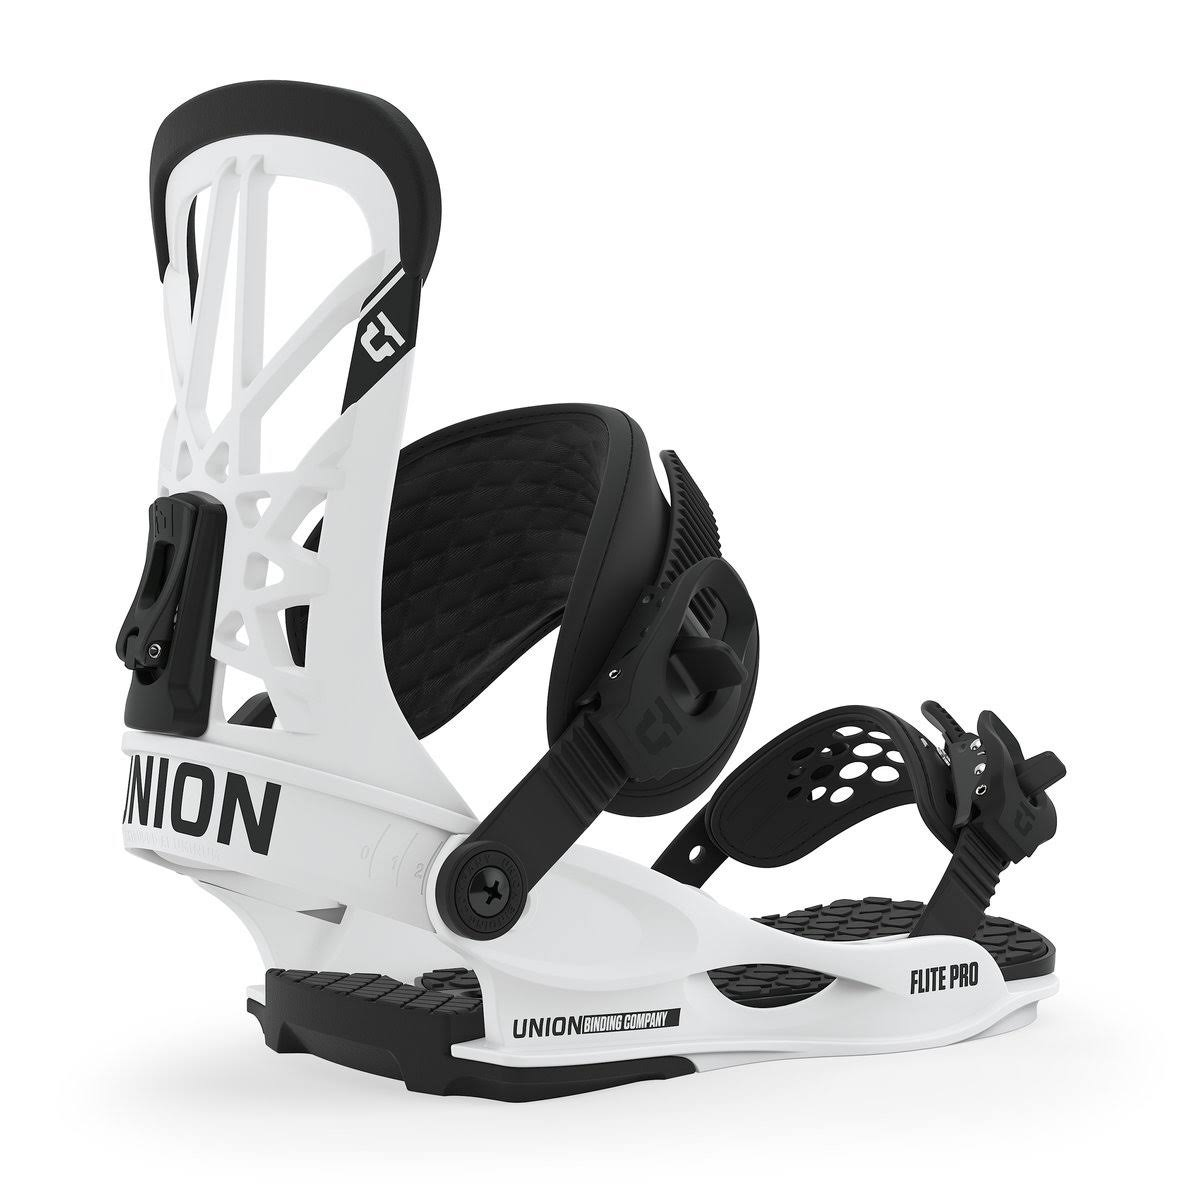 Union Flite Pro Snowboard Bindings 2020 (White,M)